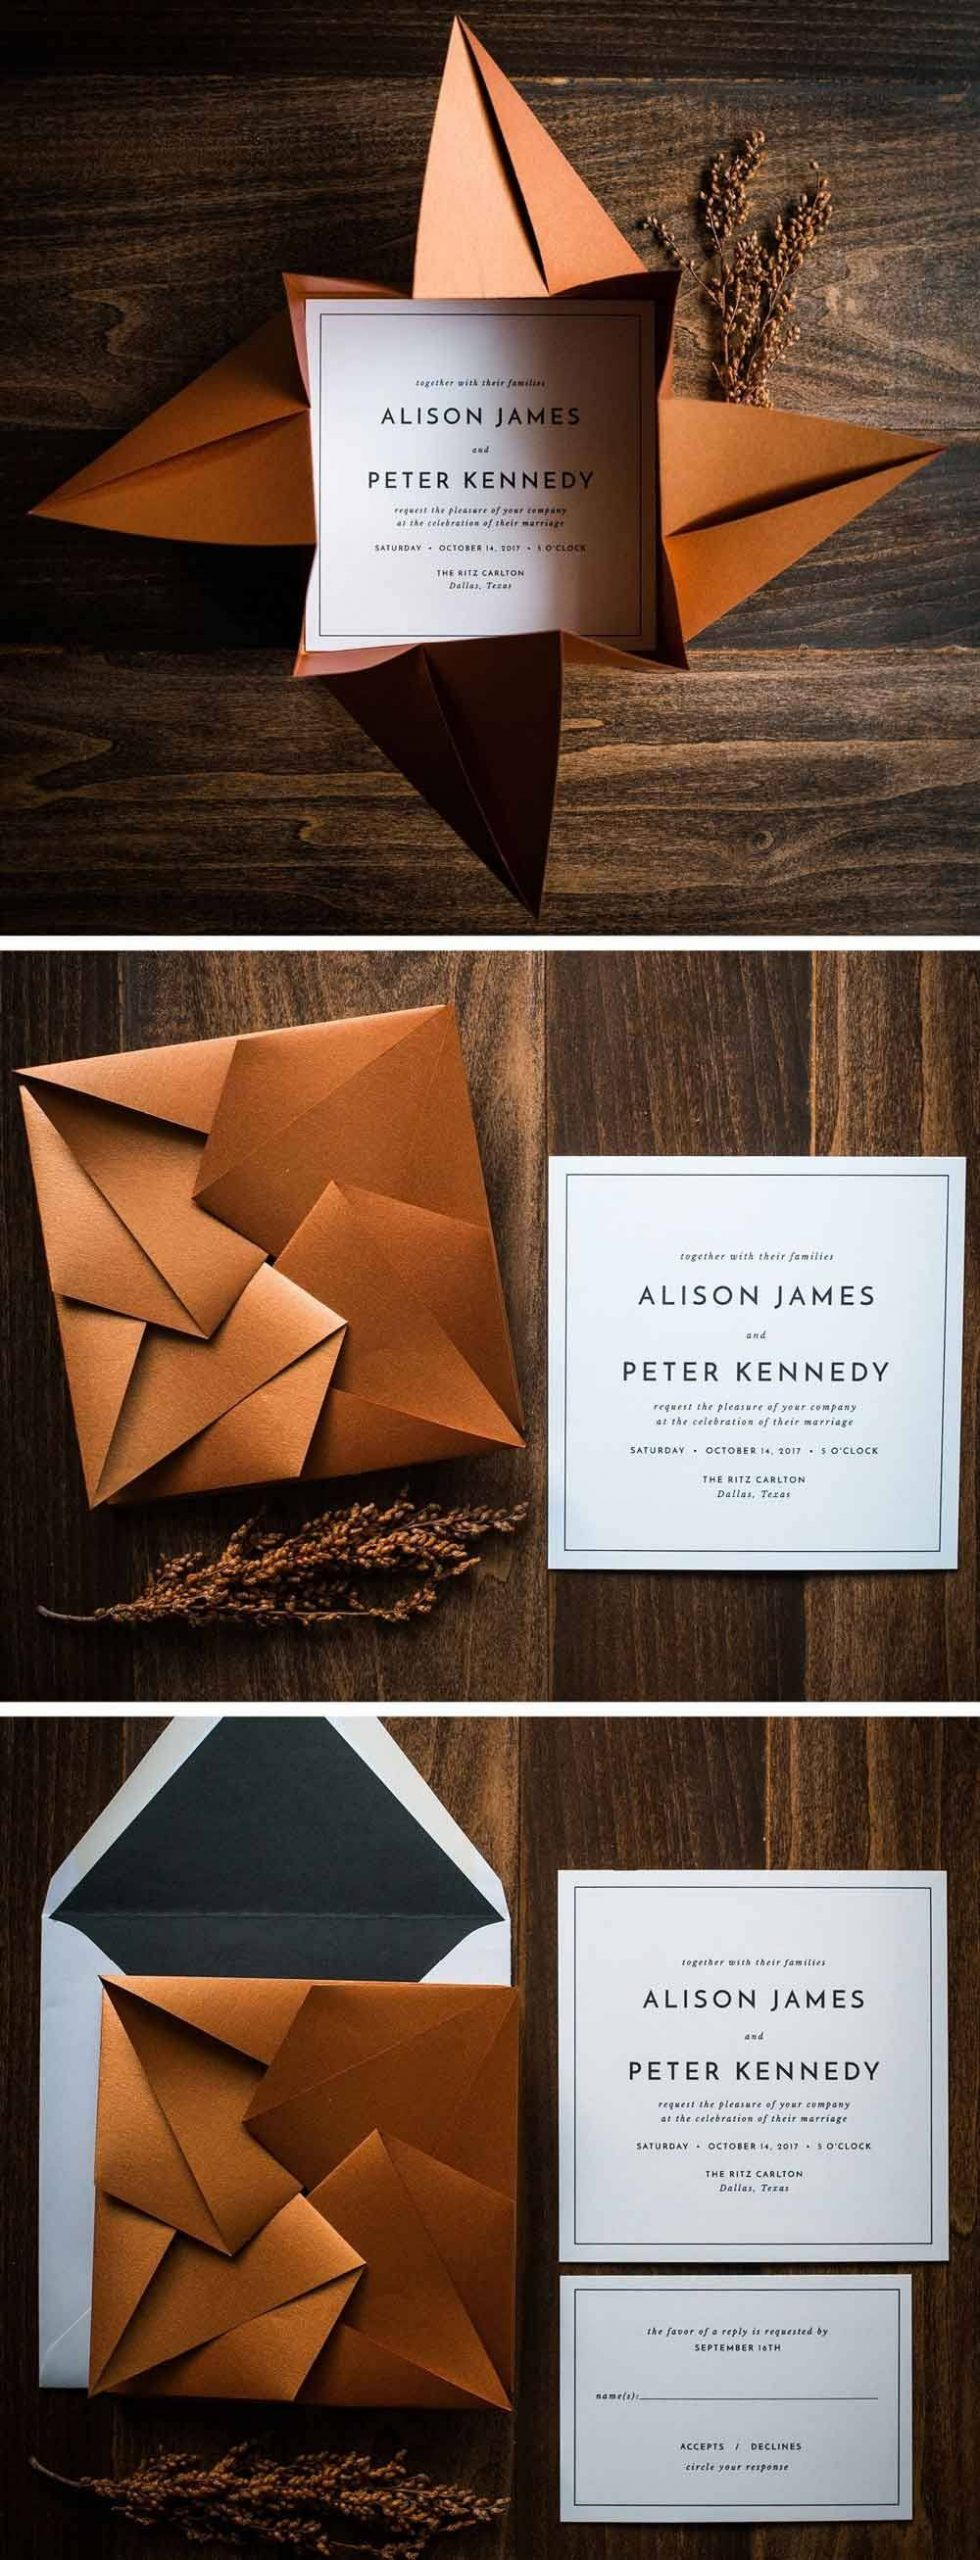 wedding invitation ideas 39 scaled